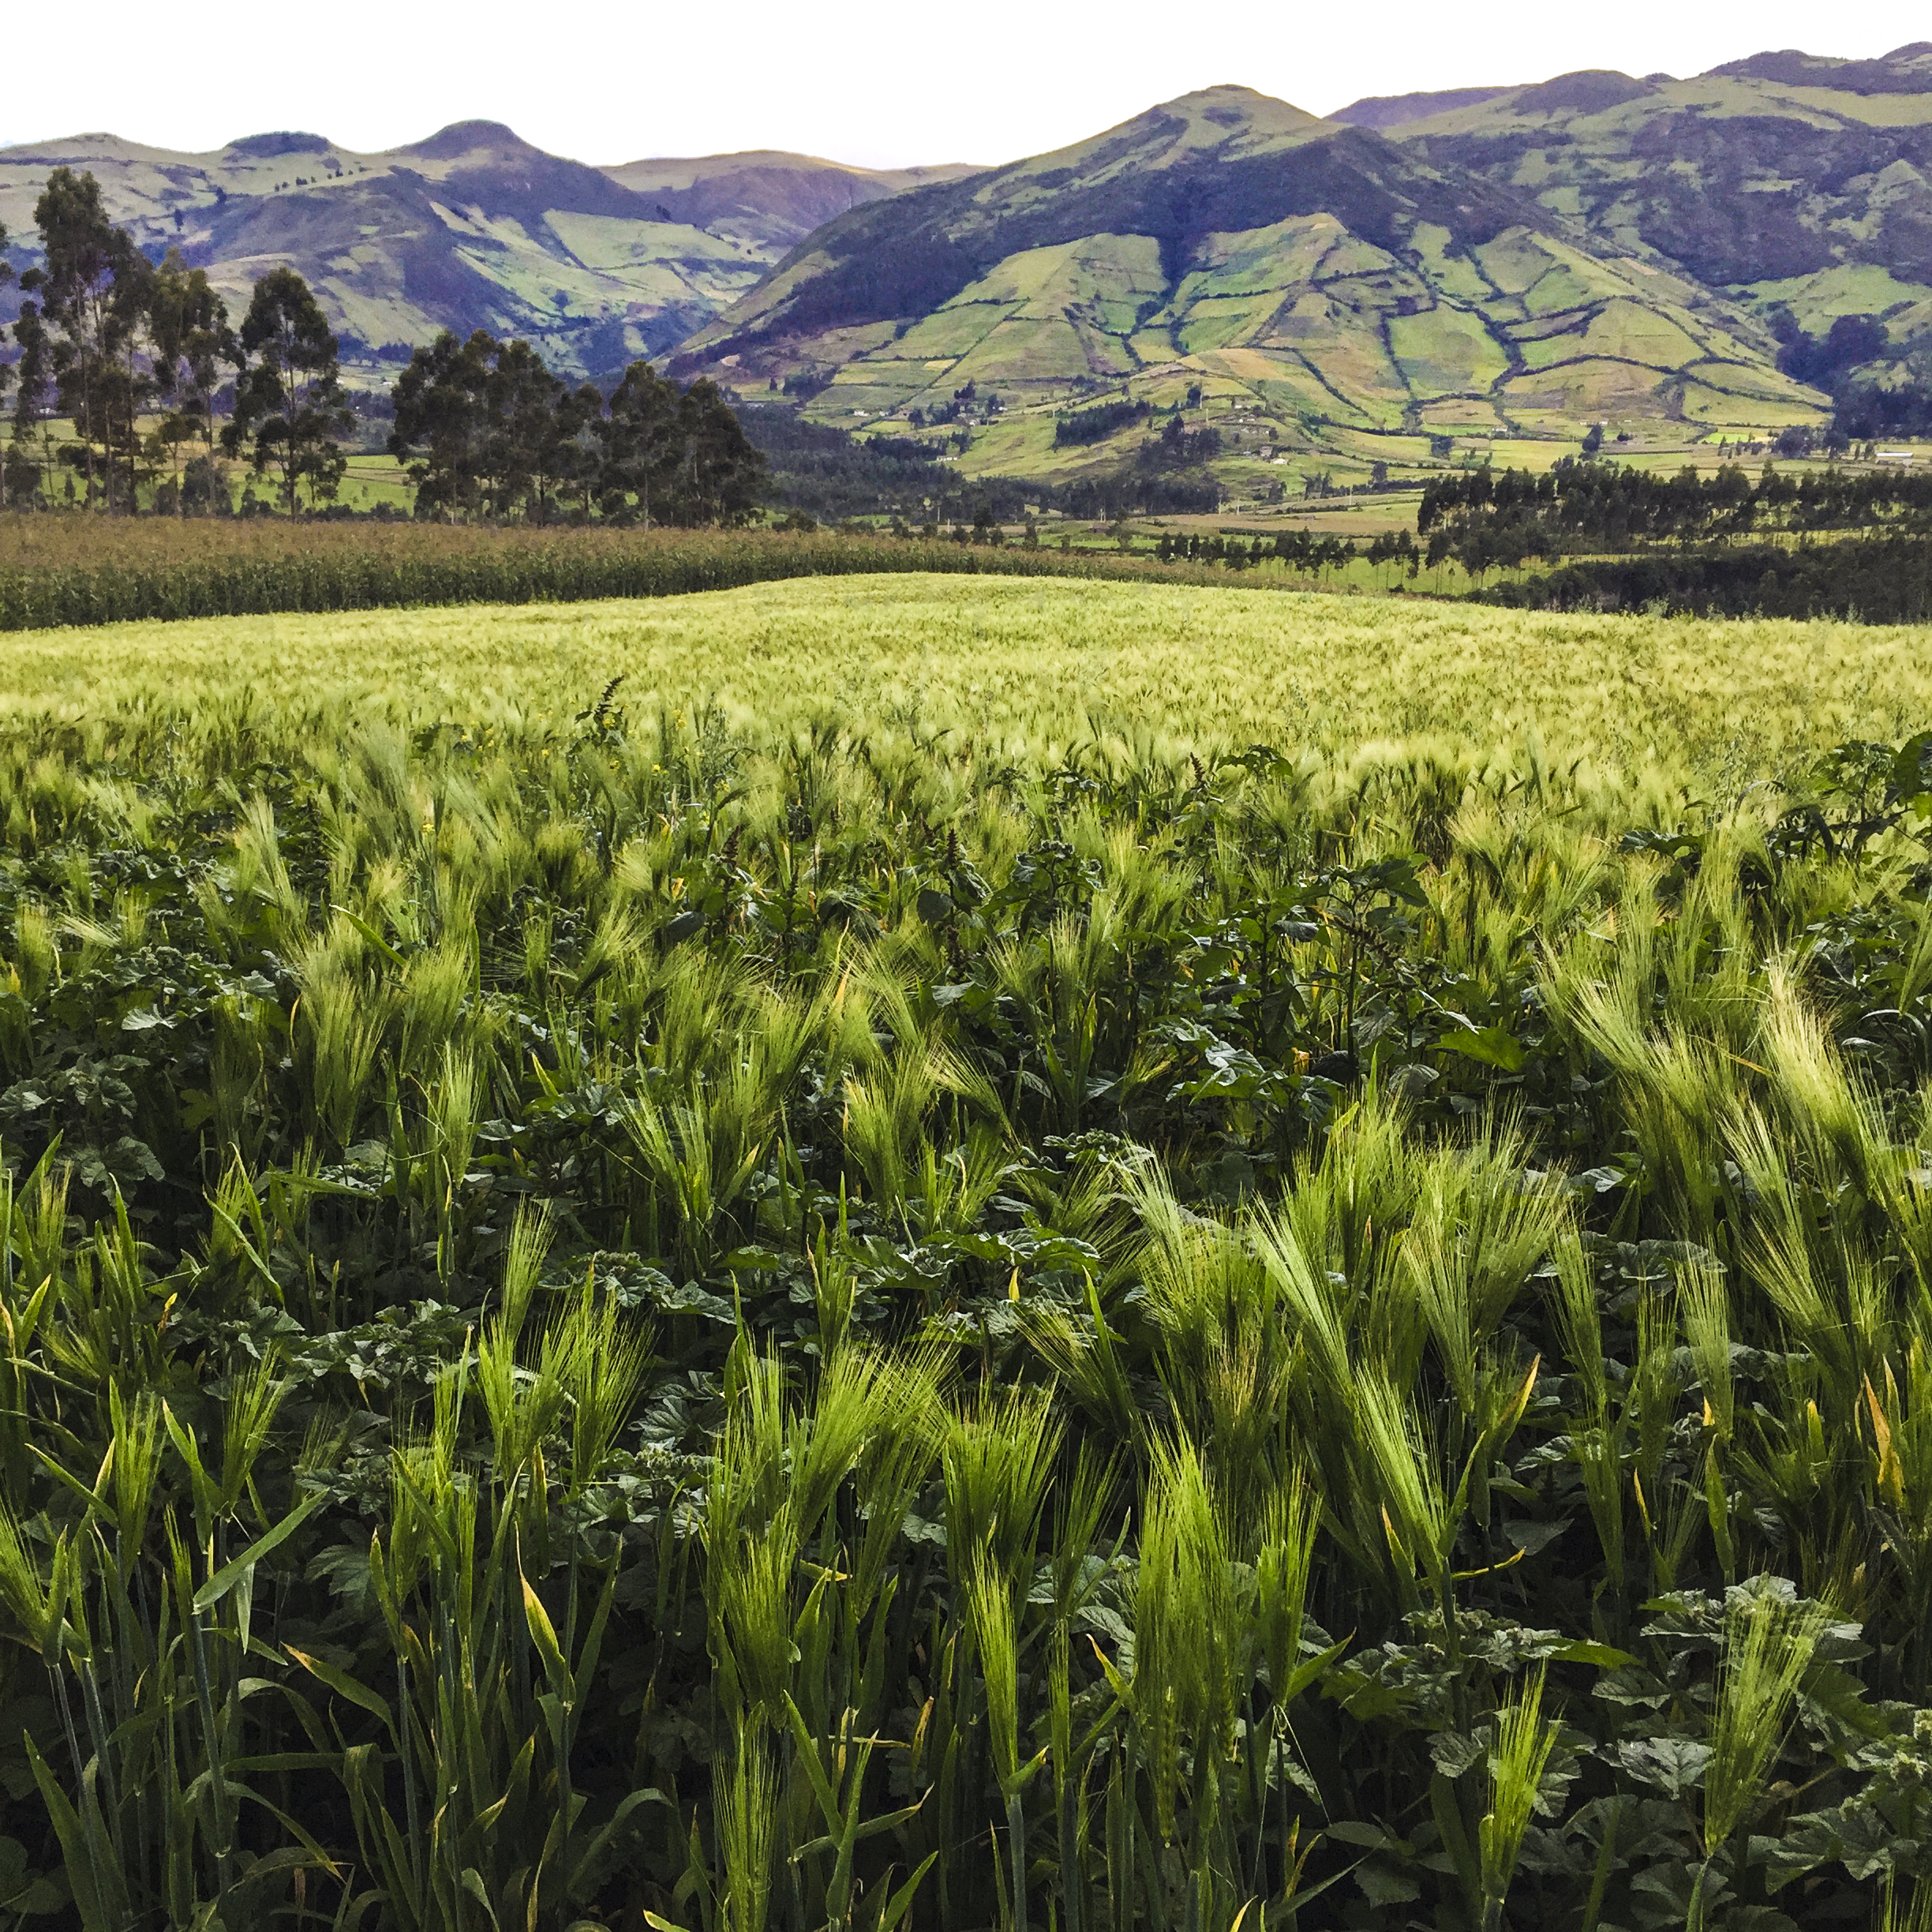 agritourism - Agritourism is the crossroads of tourism and agriculture where you can experience the farm lifestyle